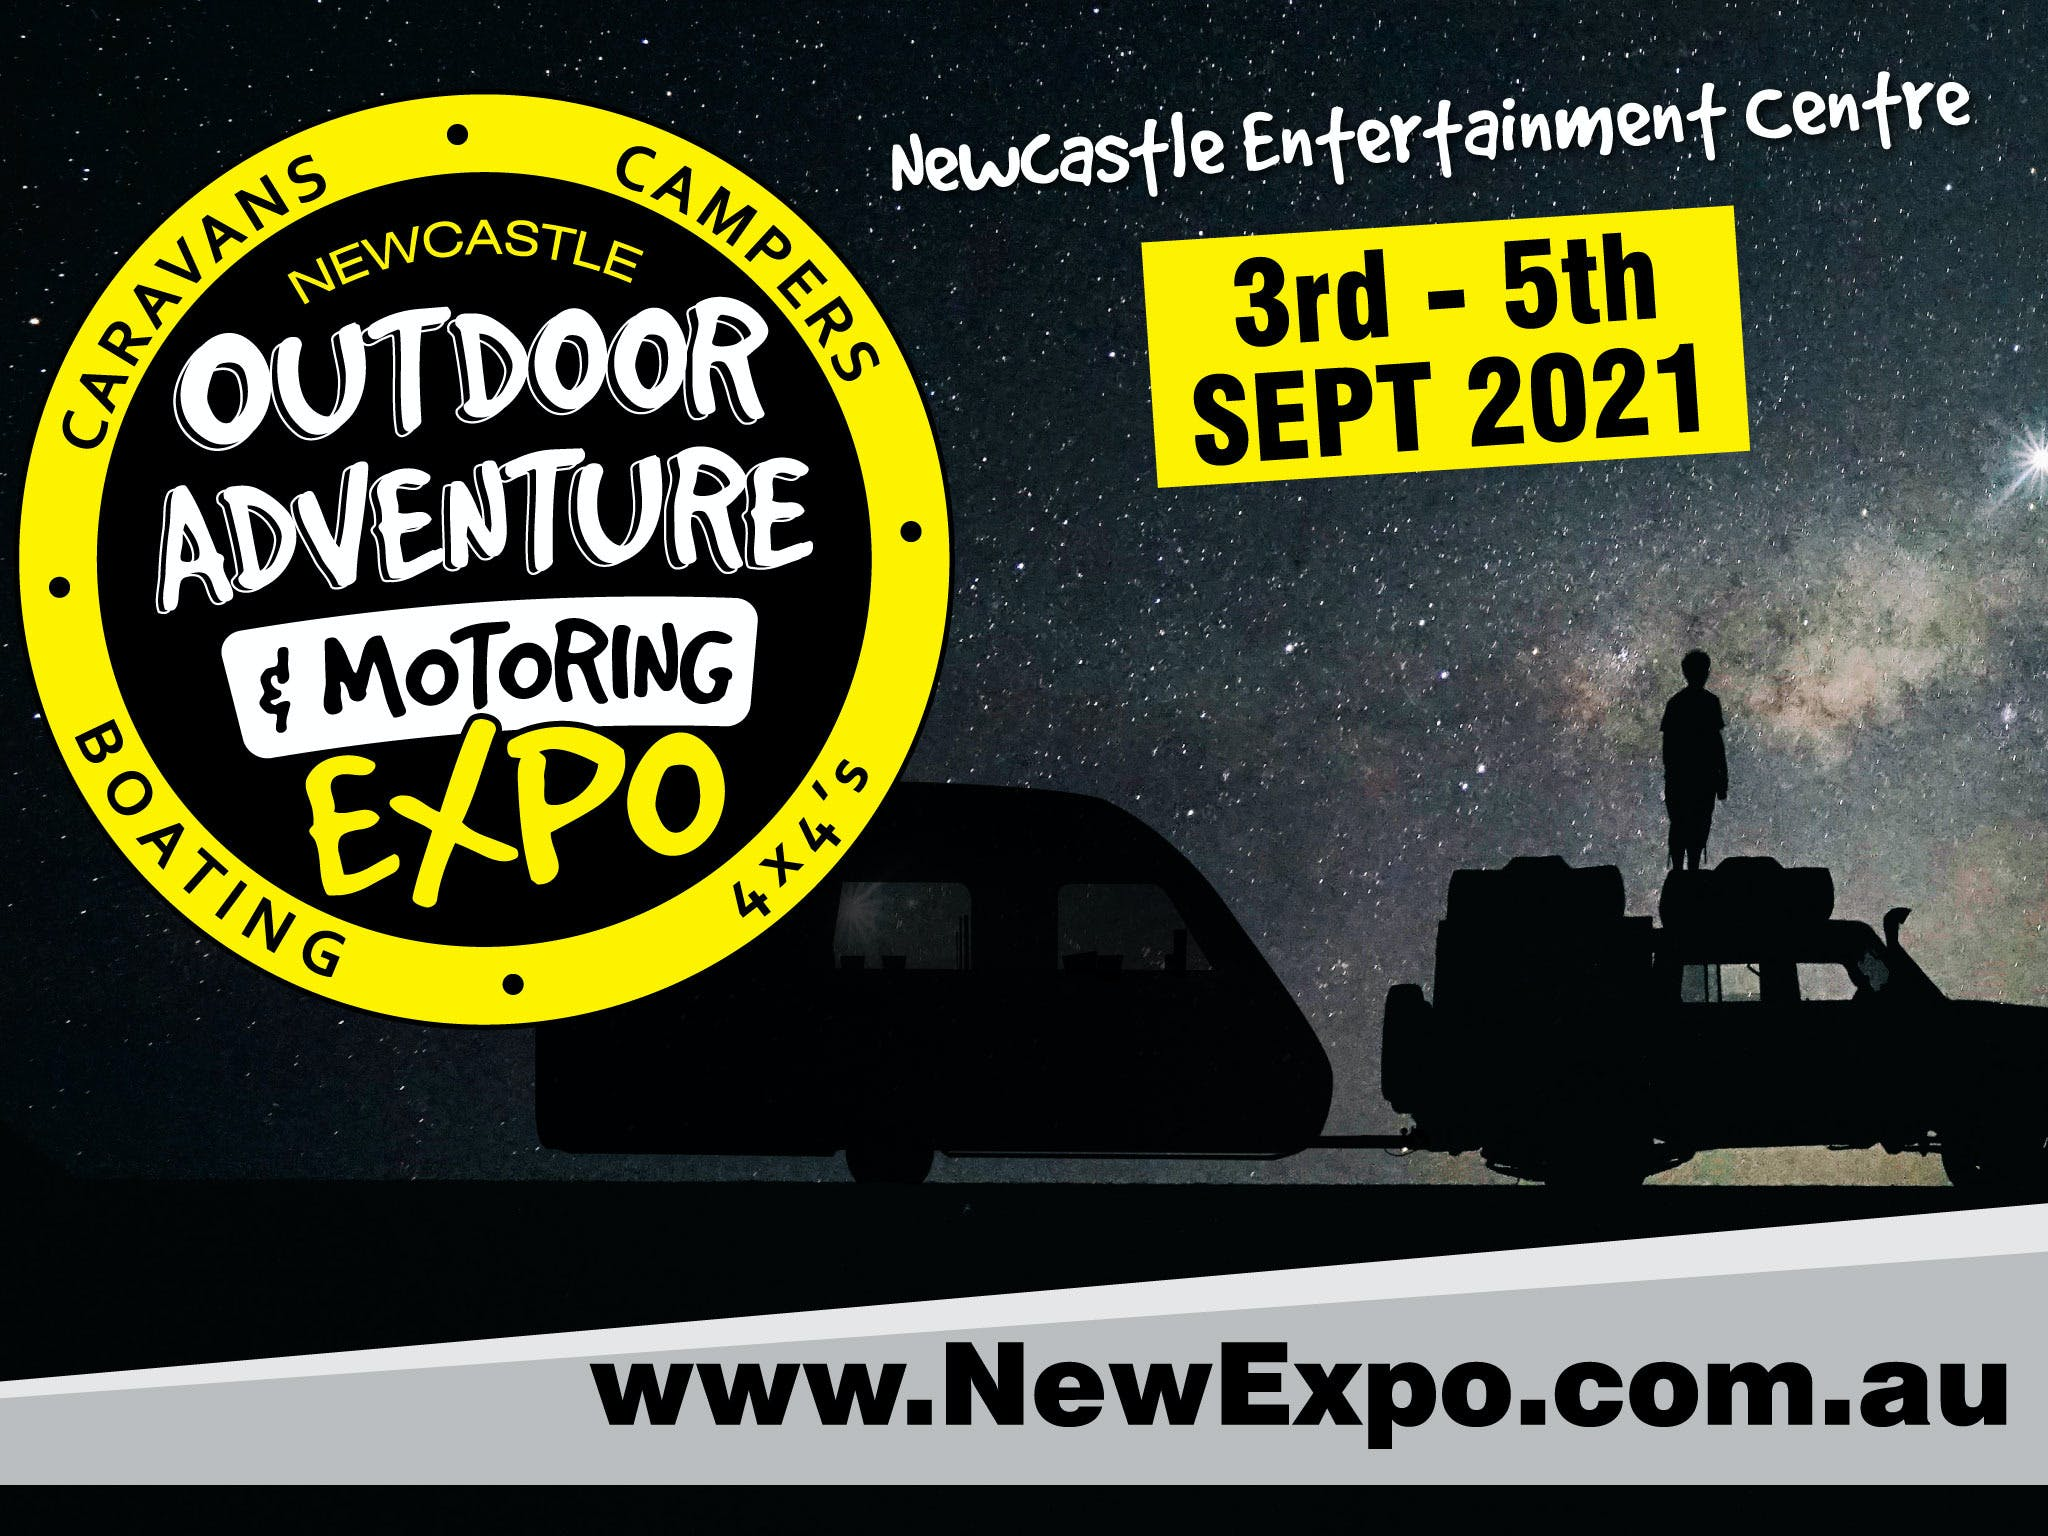 Newcastle Outdoor Adventure and Motoring Expo - Surfers Gold Coast